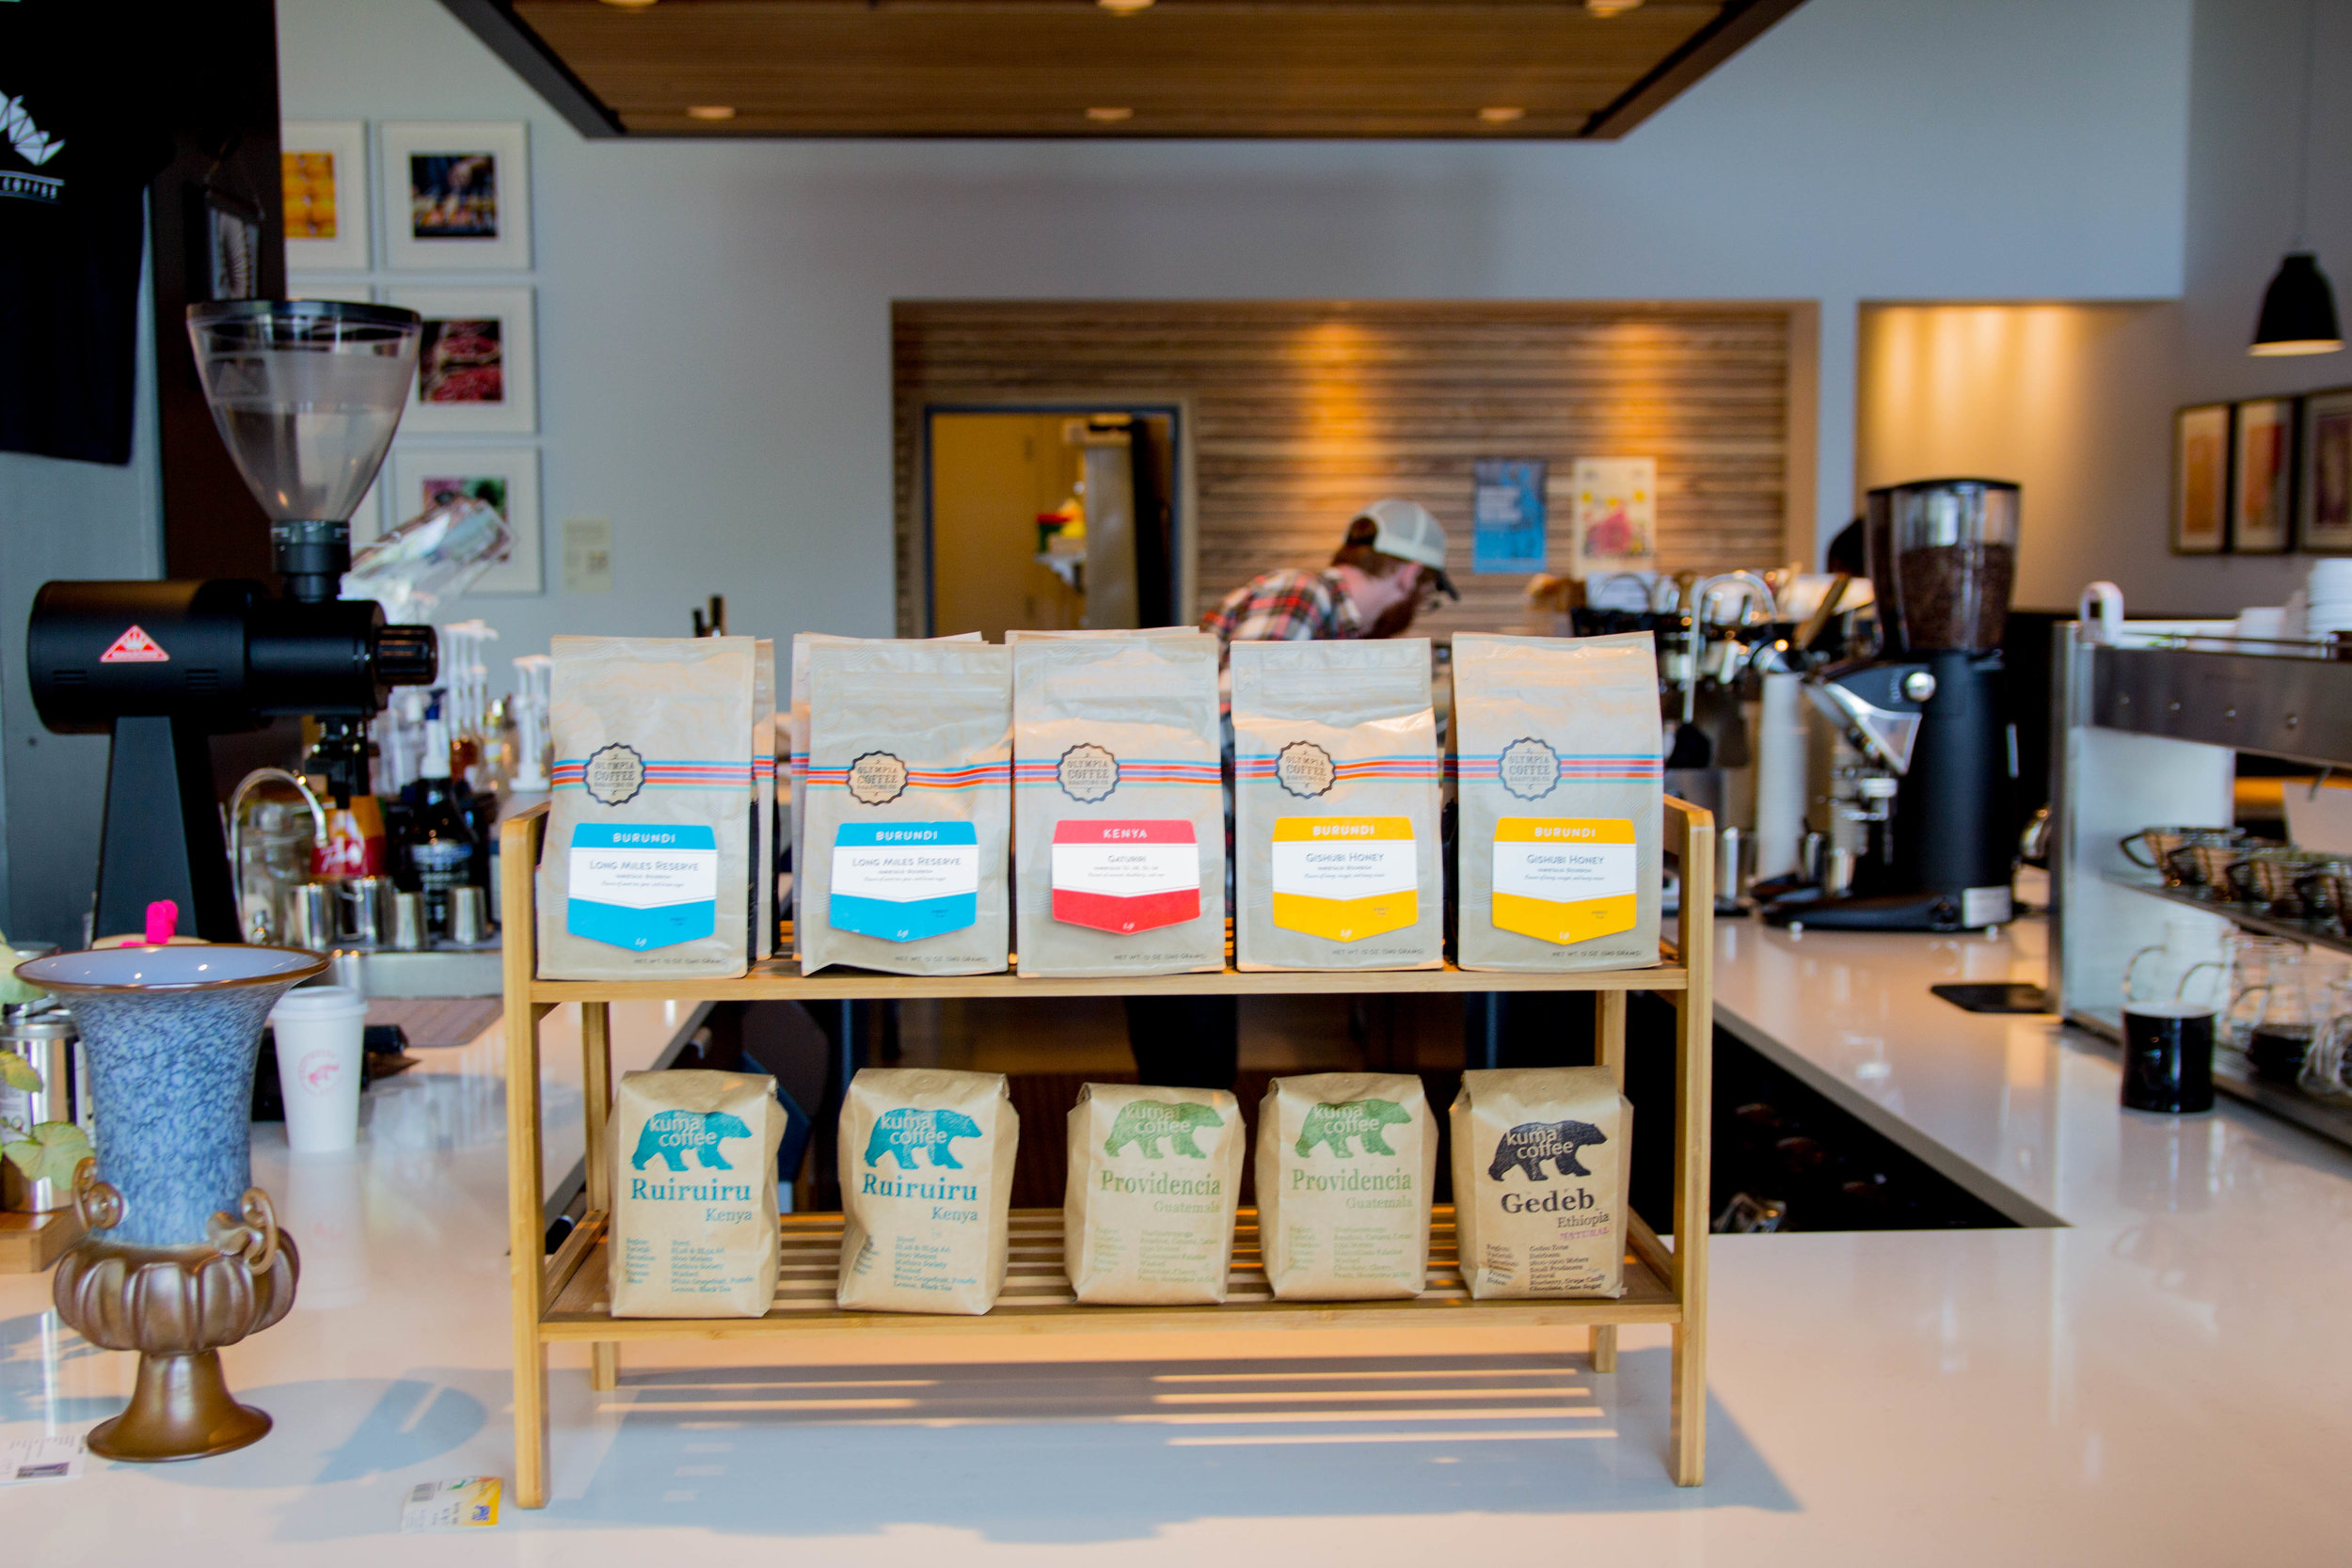 the best places to get coffee in seattle, seattle coffee shops, washington, , craftworks coffee, queen anne district